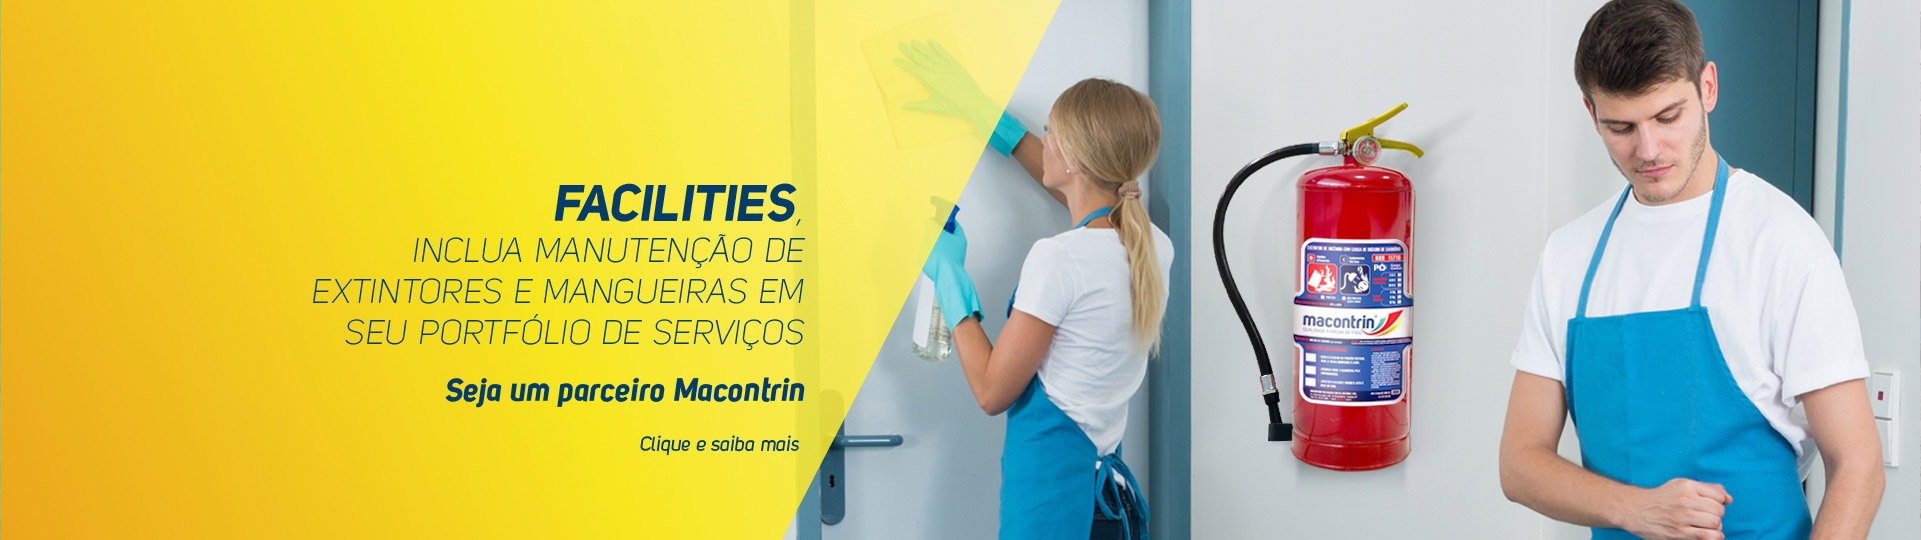 diferencial-para-facilities-full-banner